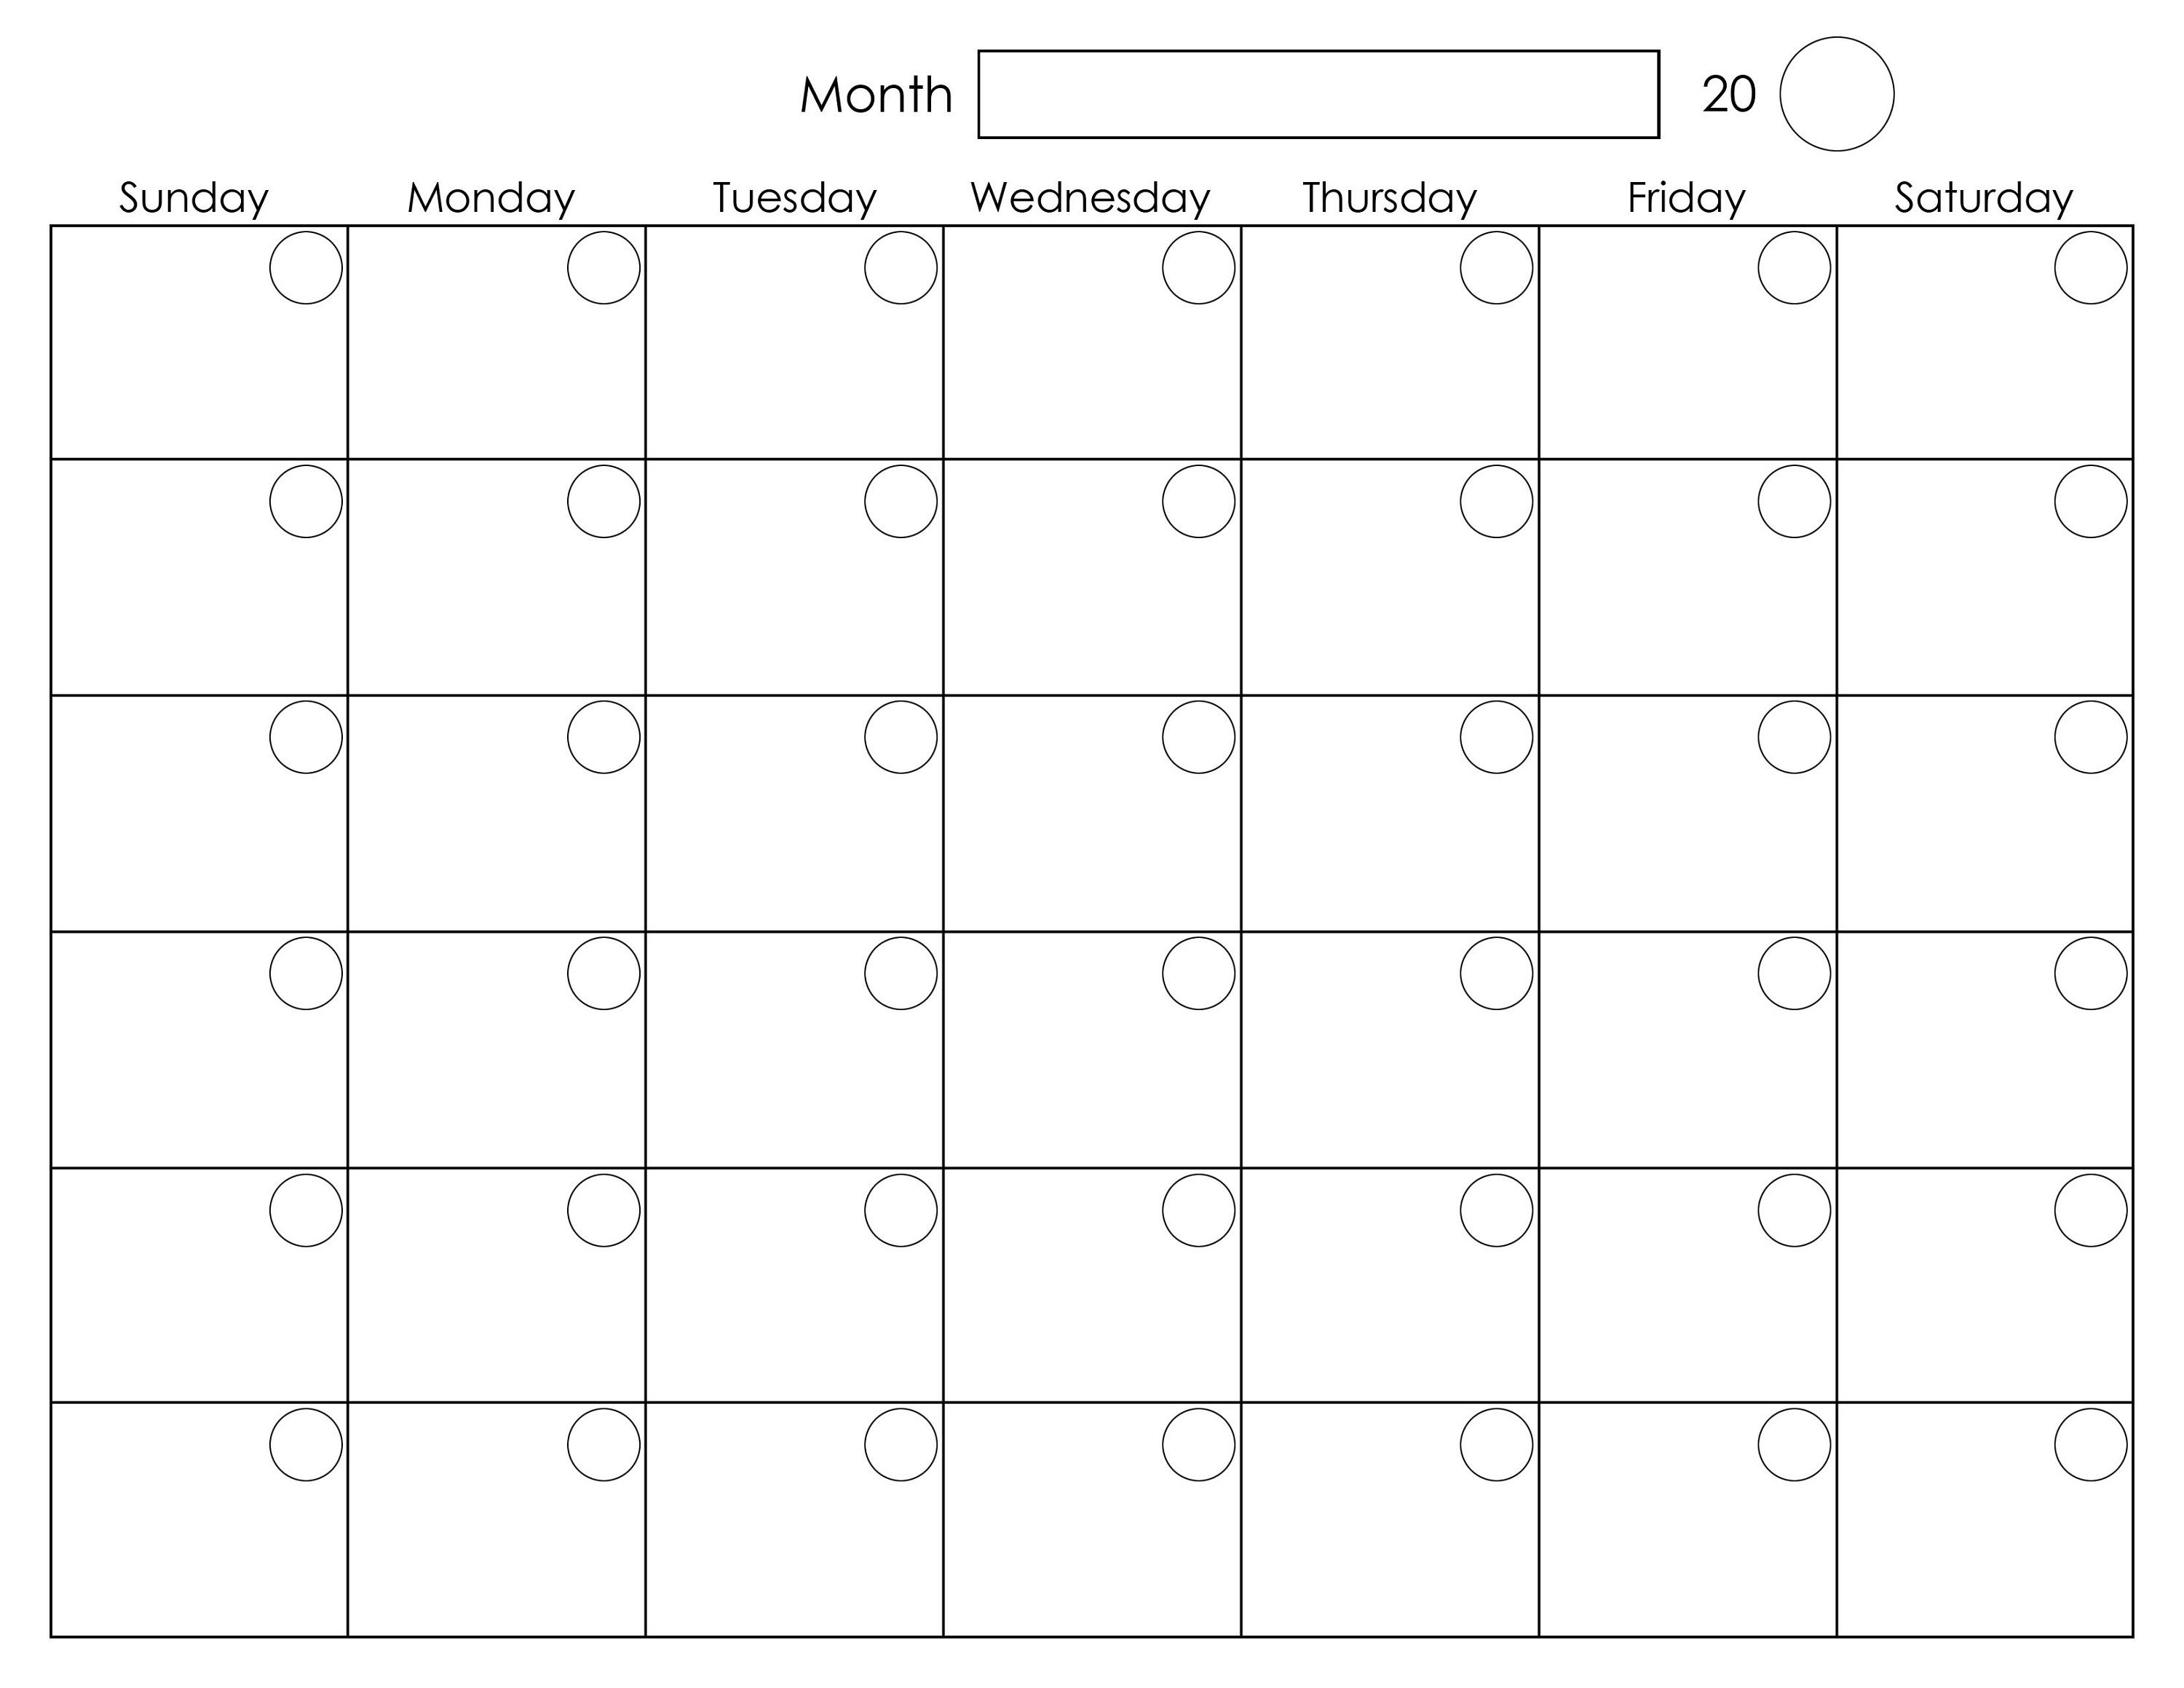 Printable Blank Monthly Calendar | Calendar Template Printable inside Blank Calendar To Print By Month